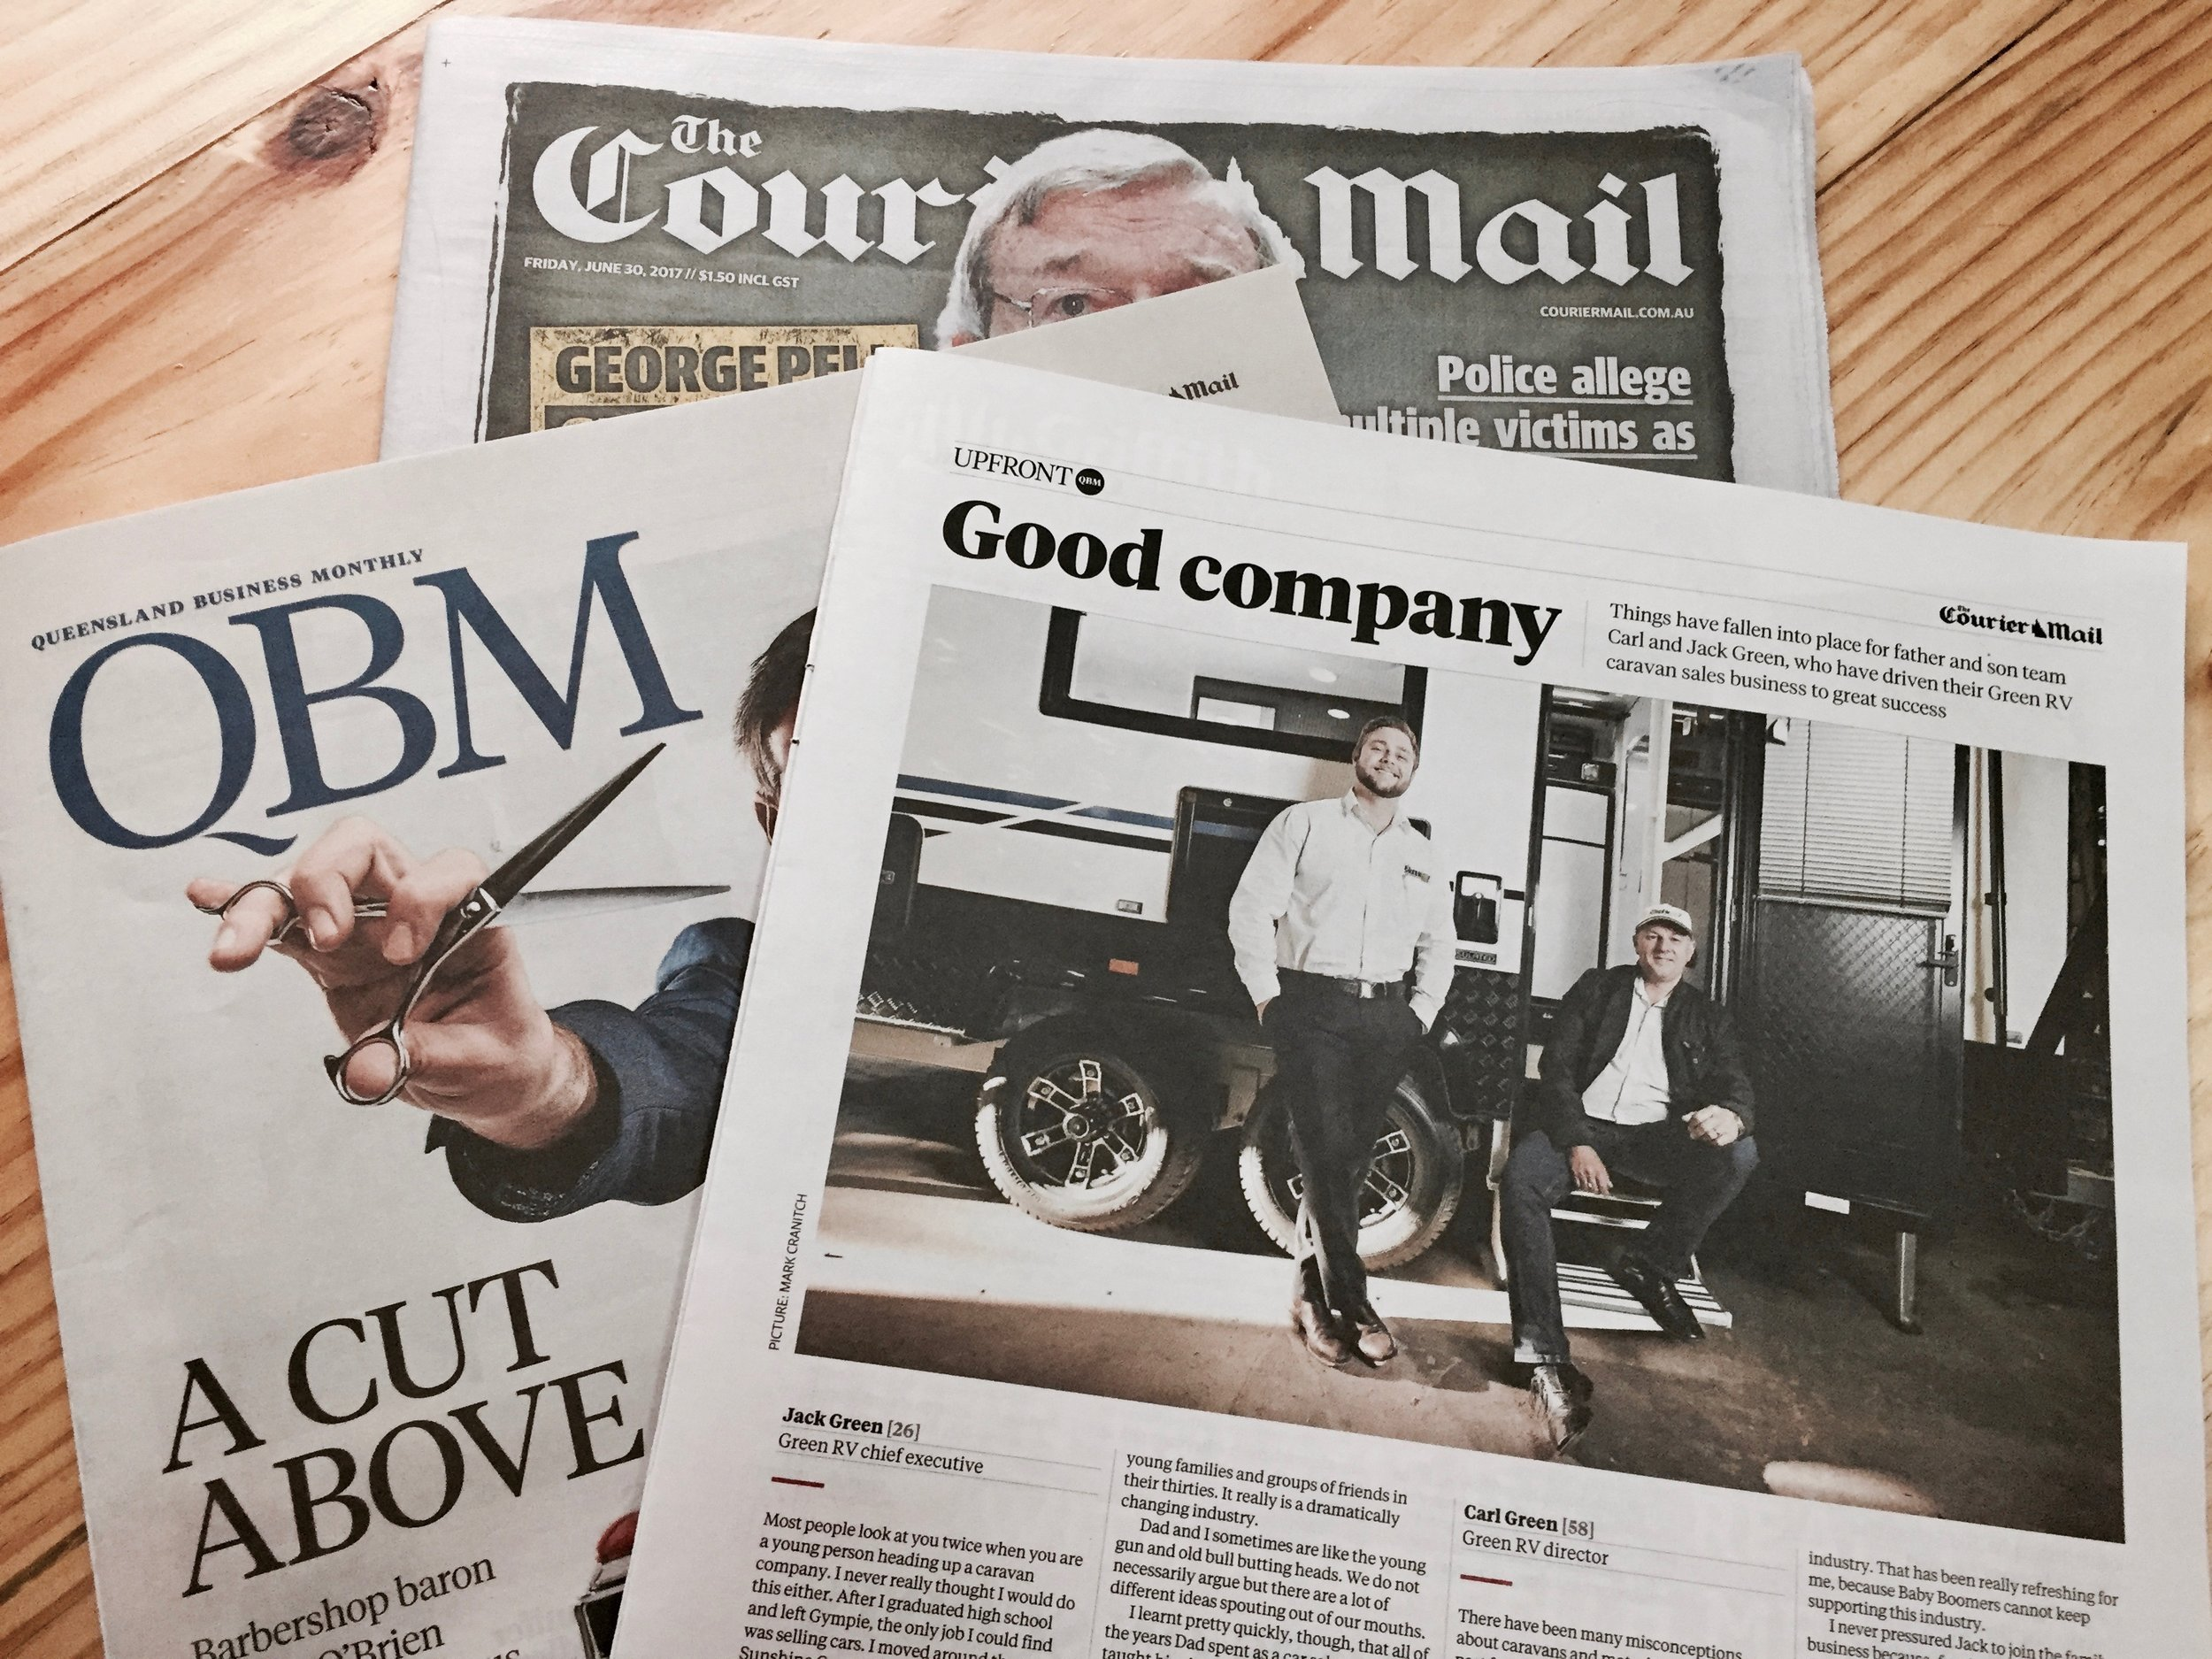 The enterprising father-son duo Jack and Carl Green of  Green RV  adorn the page-three 'Good Company' feature in the  Courier Mail 's monthly QBM magazine.